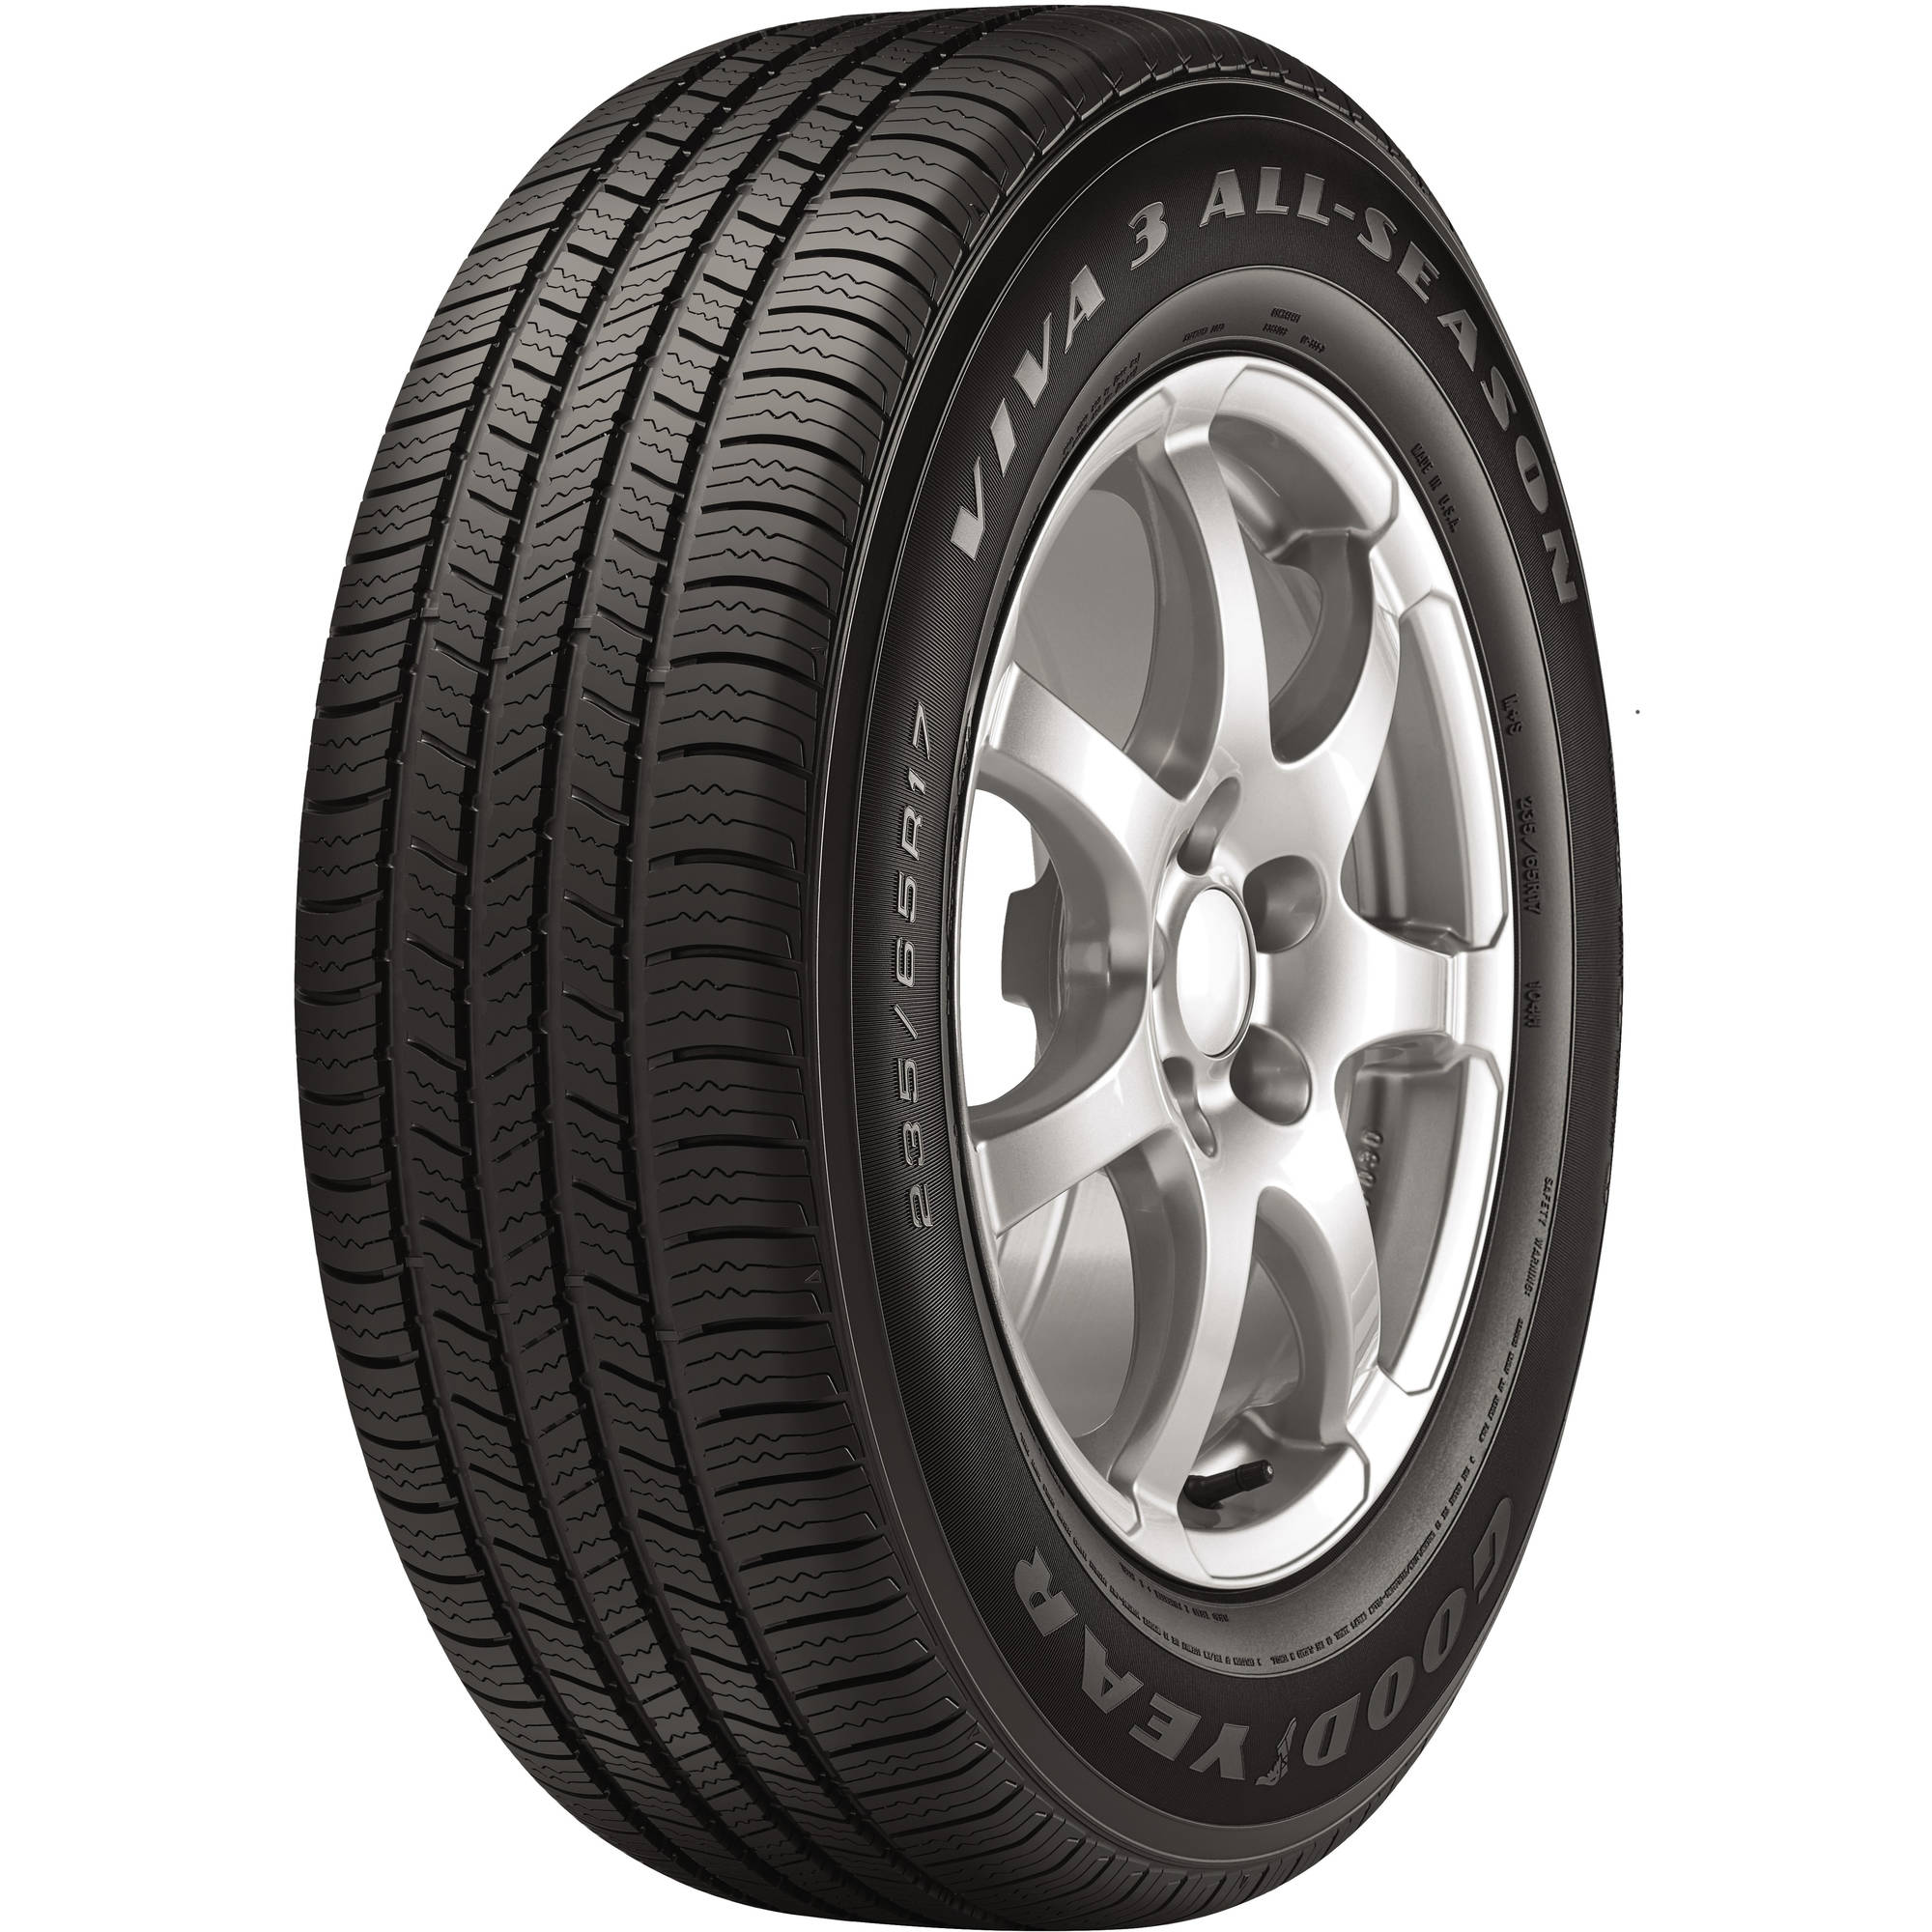 Goodyear Viva 3 All-Season Tire 235/60R18 103H